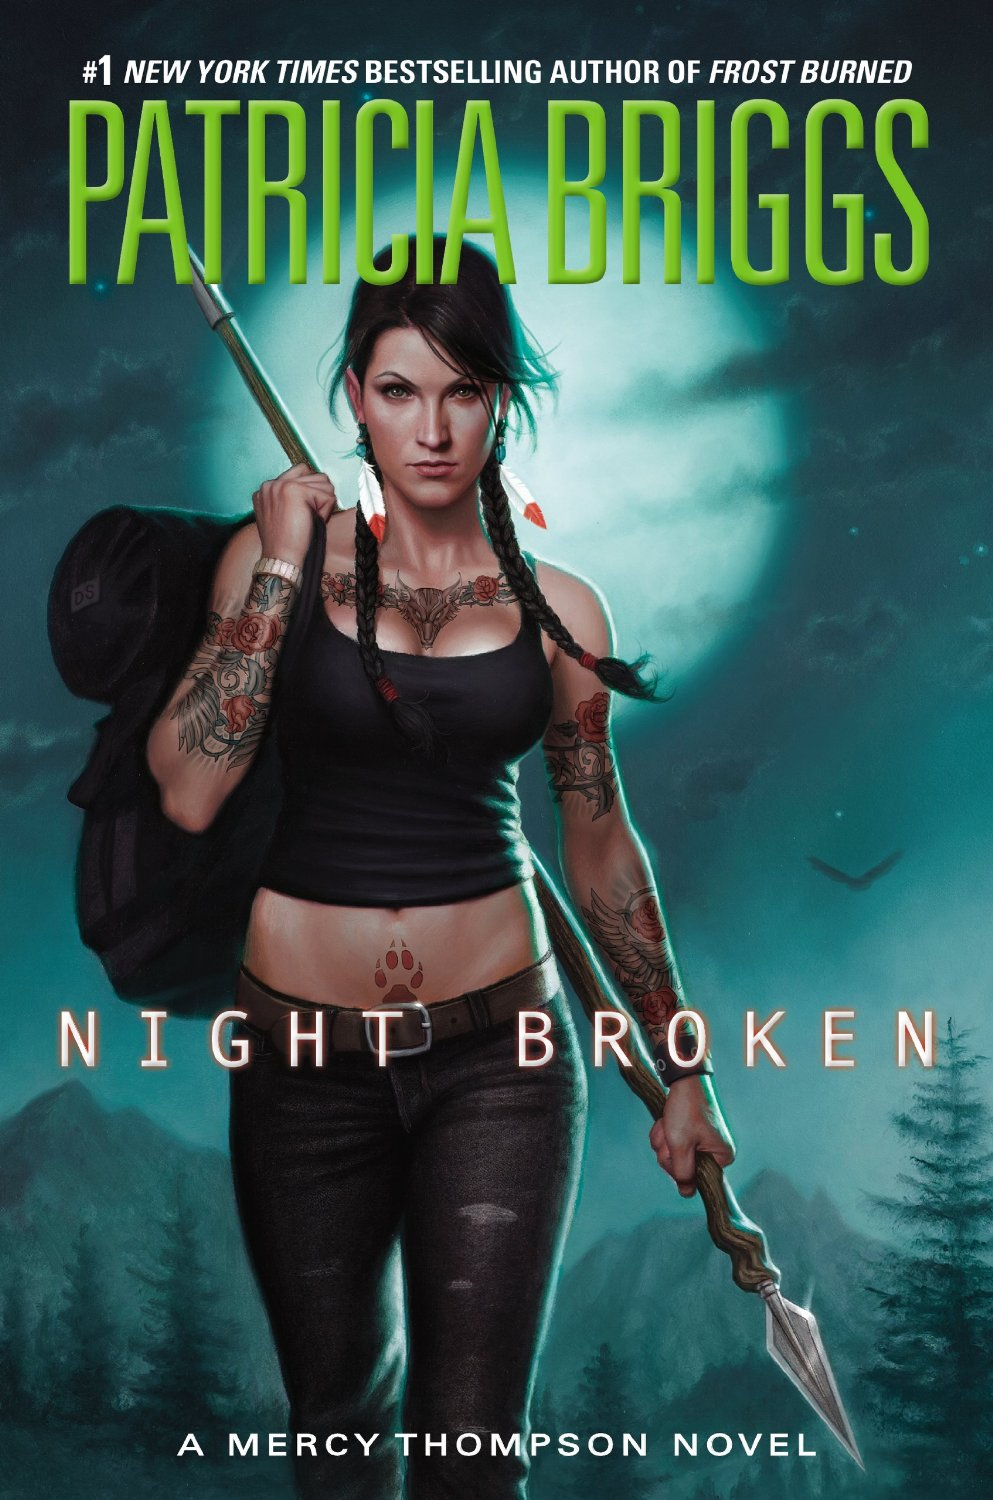 Night Broken by Patricia Briggs Amazon | Goodreads